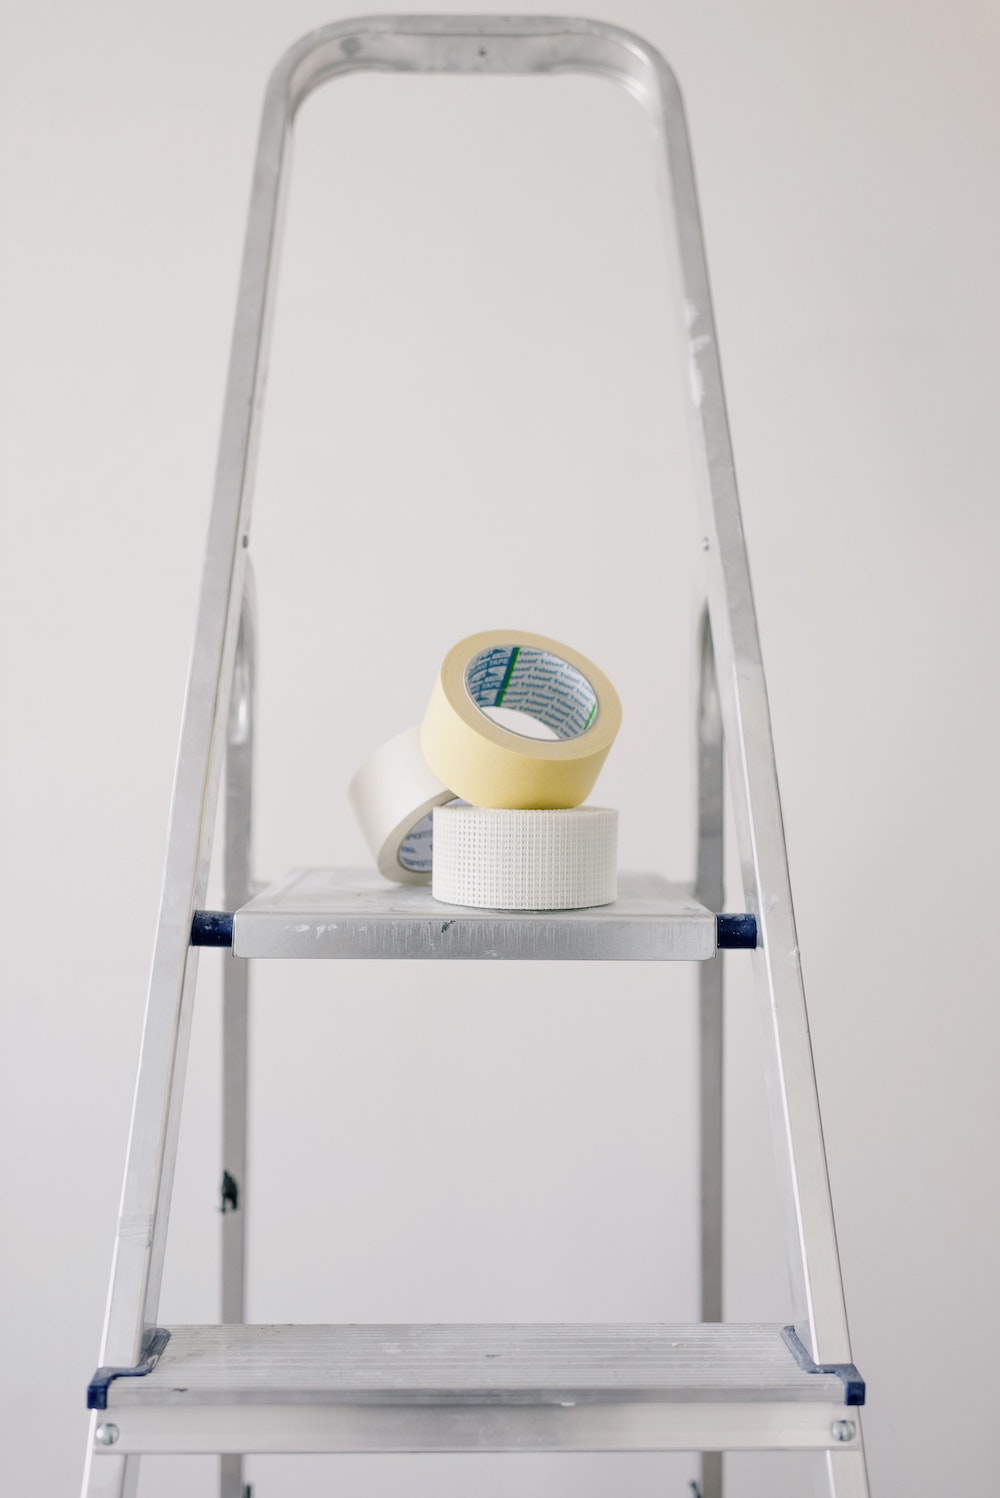 The equipment of a water damage contractor sits on a stool.